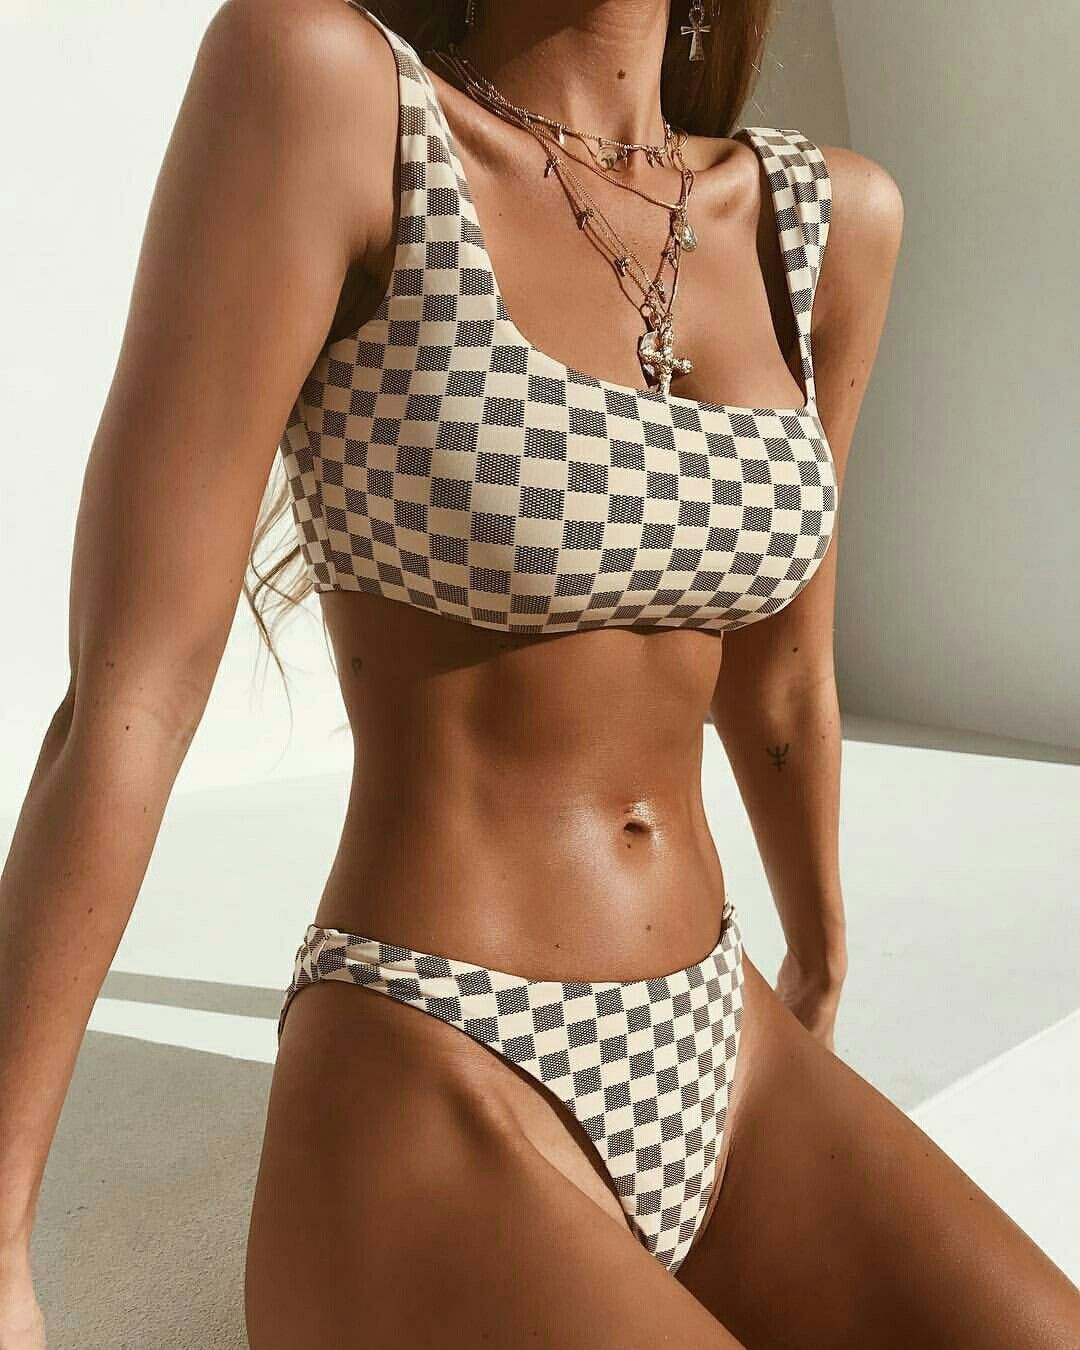 8894f5d80db ... swimsuits thong by Tinkerbell Cosmetic Shop. Unhealthy and unrealistic  for the average woman. Cute checkerboard bikini.